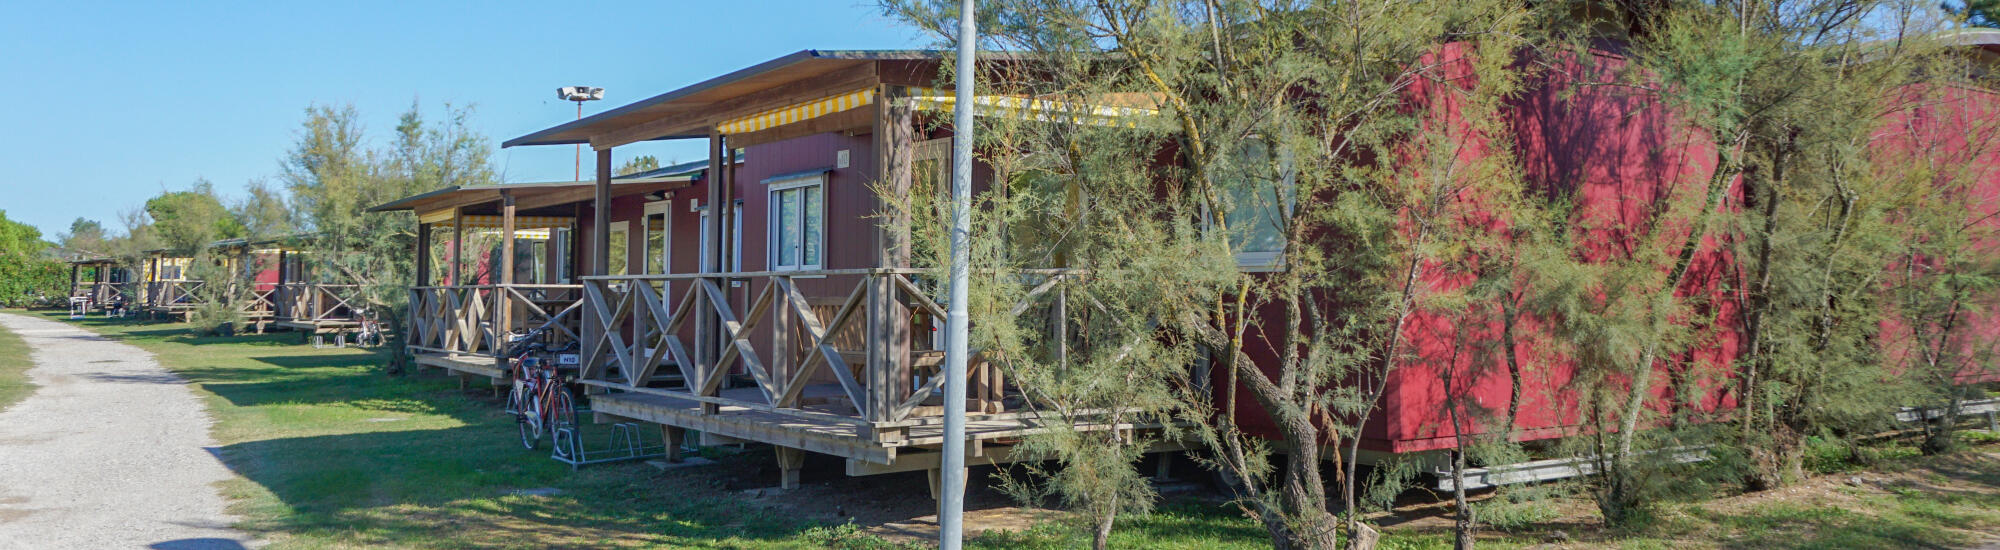 Offerta weekend a Bibione in casa mobile o glamping